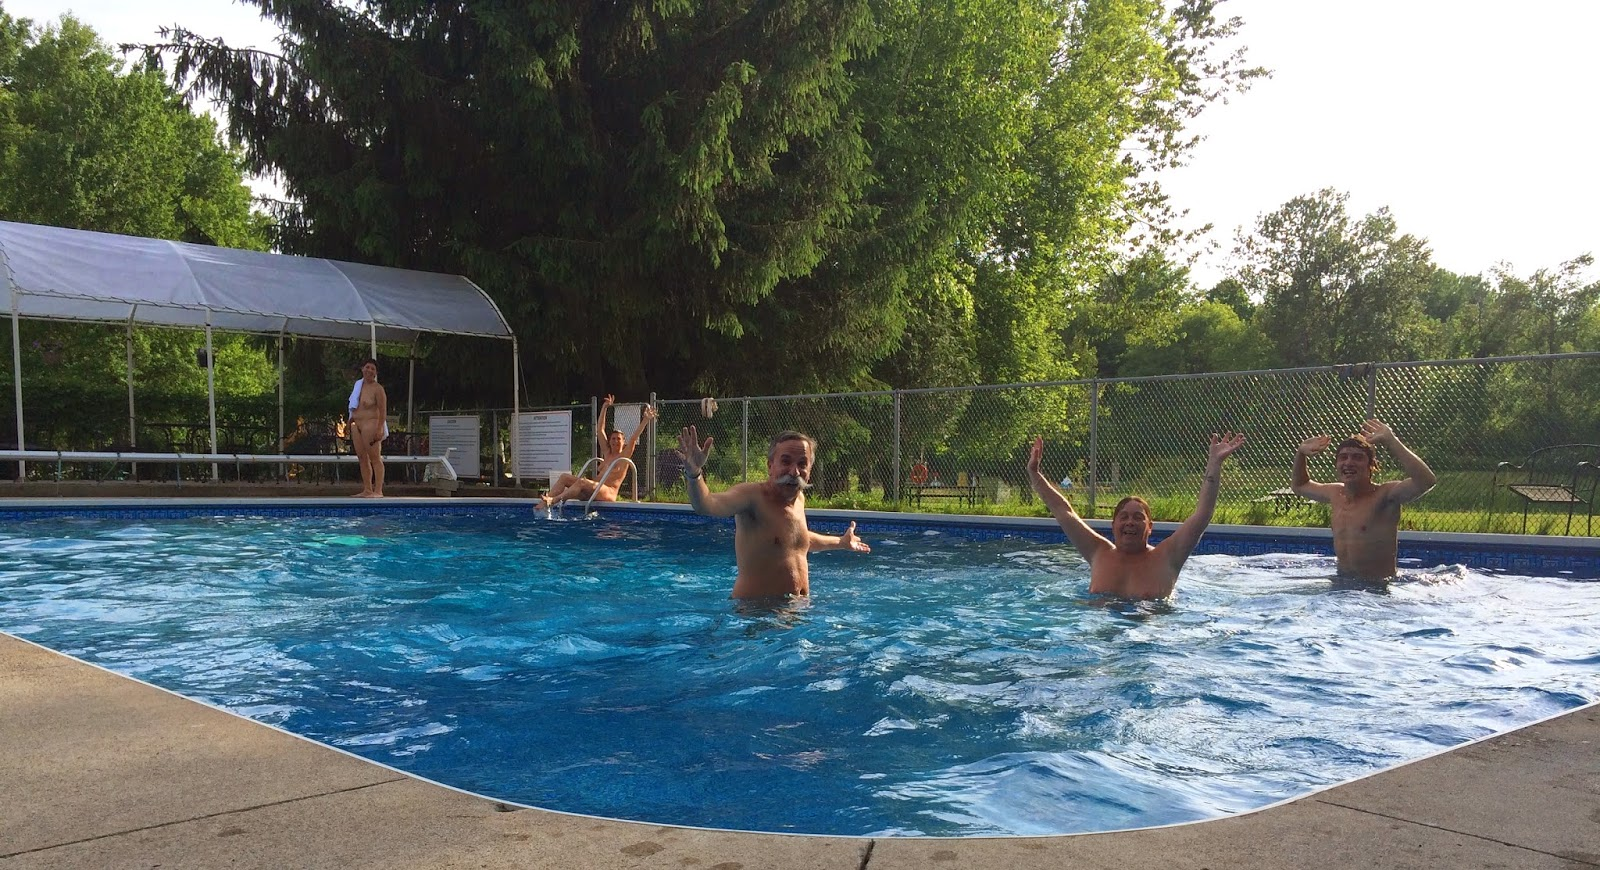 The pool at Bare Oaks Family Naturist Park